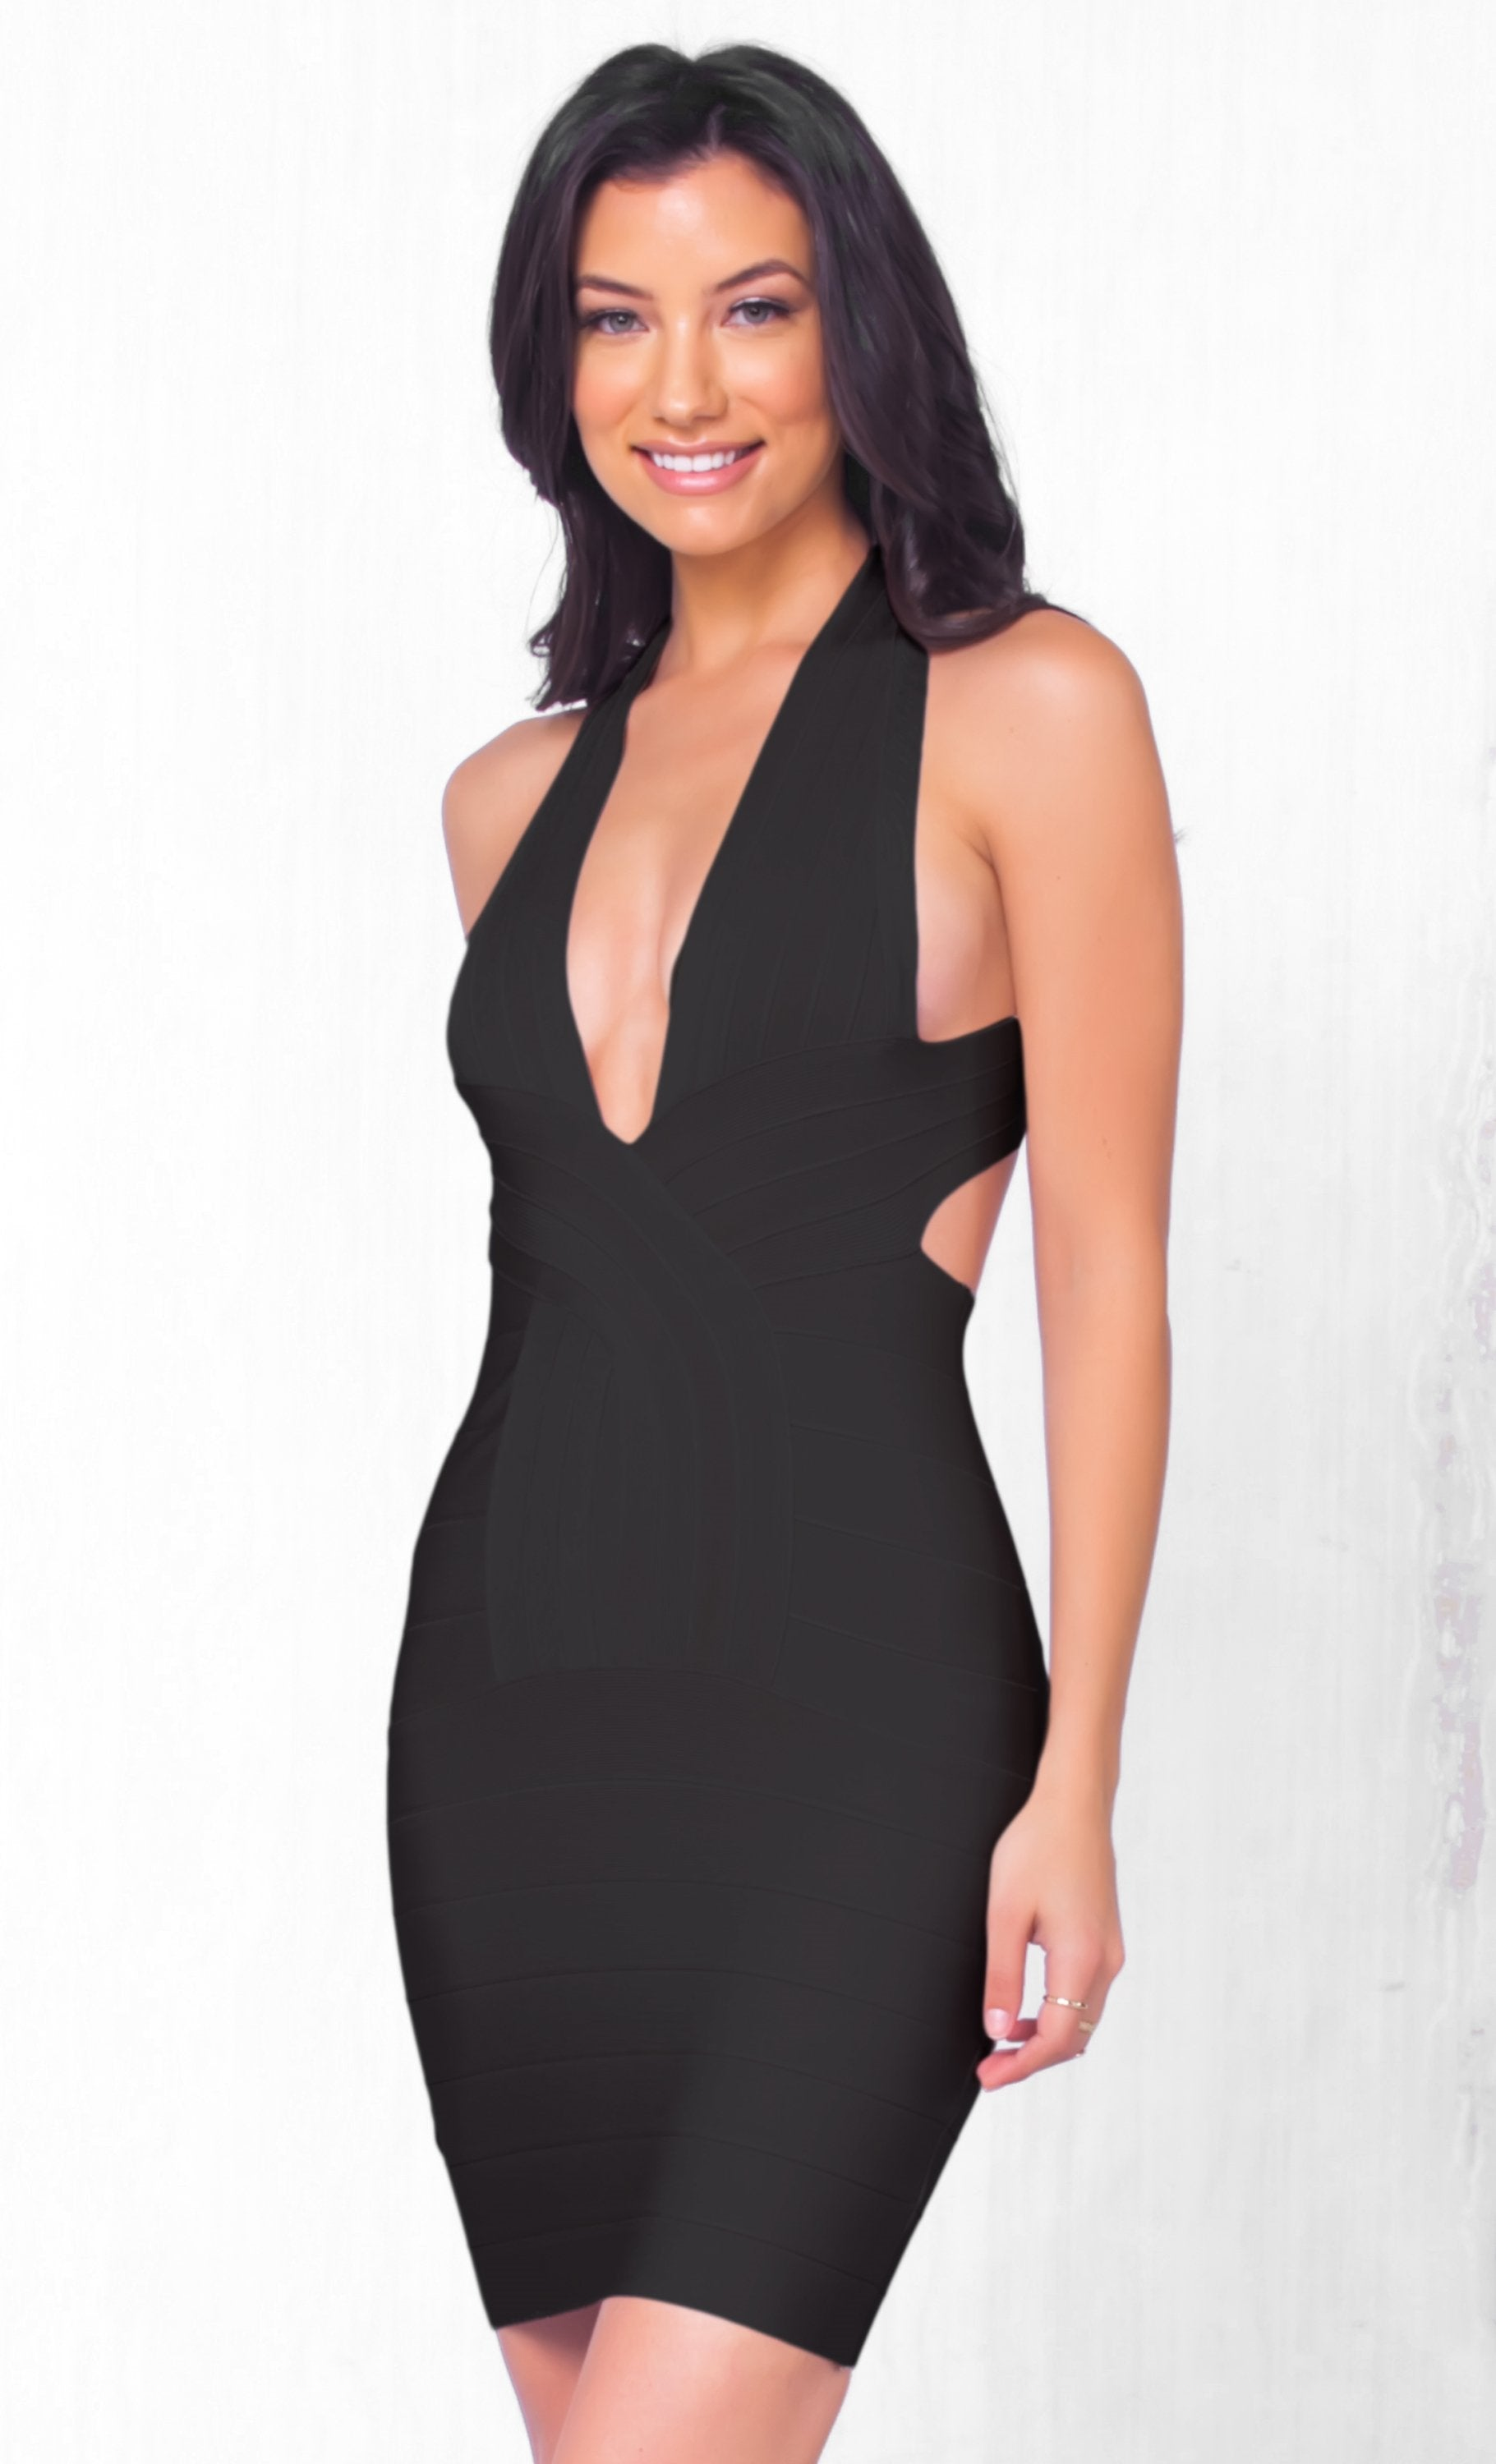 Indie XO She's A Catch Sleeveless Black Plunging Deep V Neck Cross Back Body Con Bandage Fitted Mini Dress